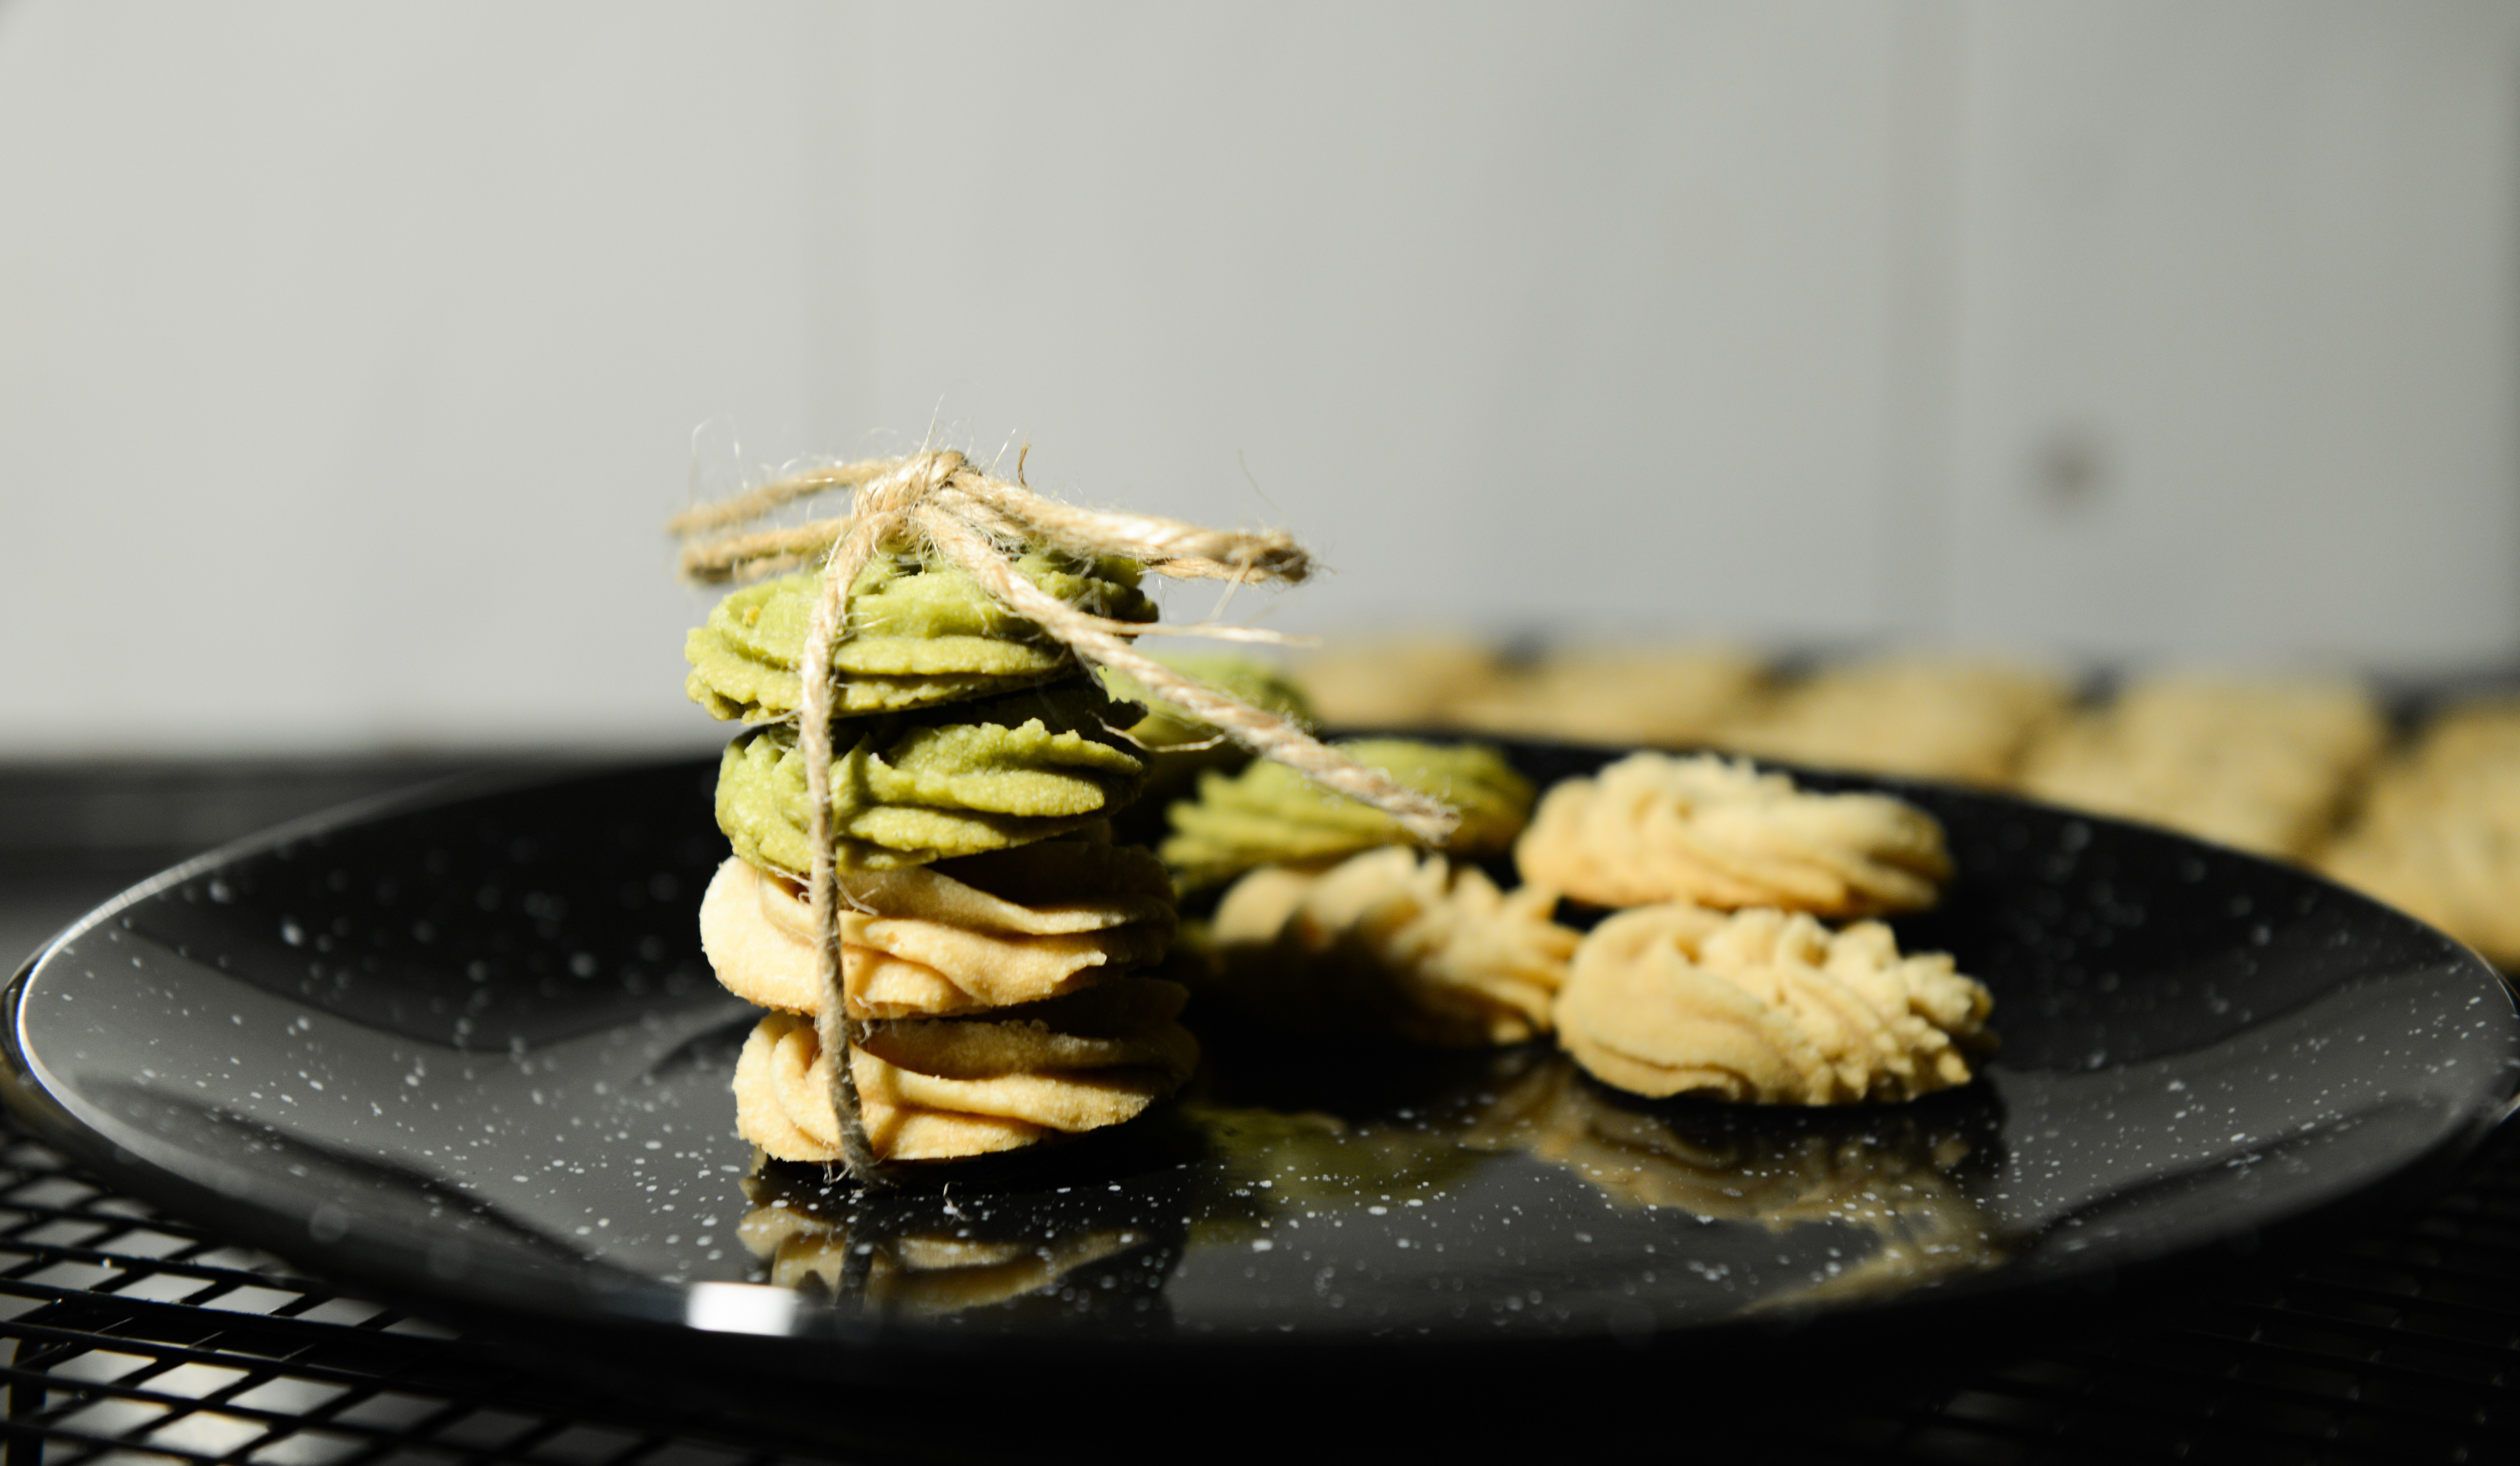 Cookies on Black Marble Plate, Baked, Pastry, Tasty, Table, HQ Photo